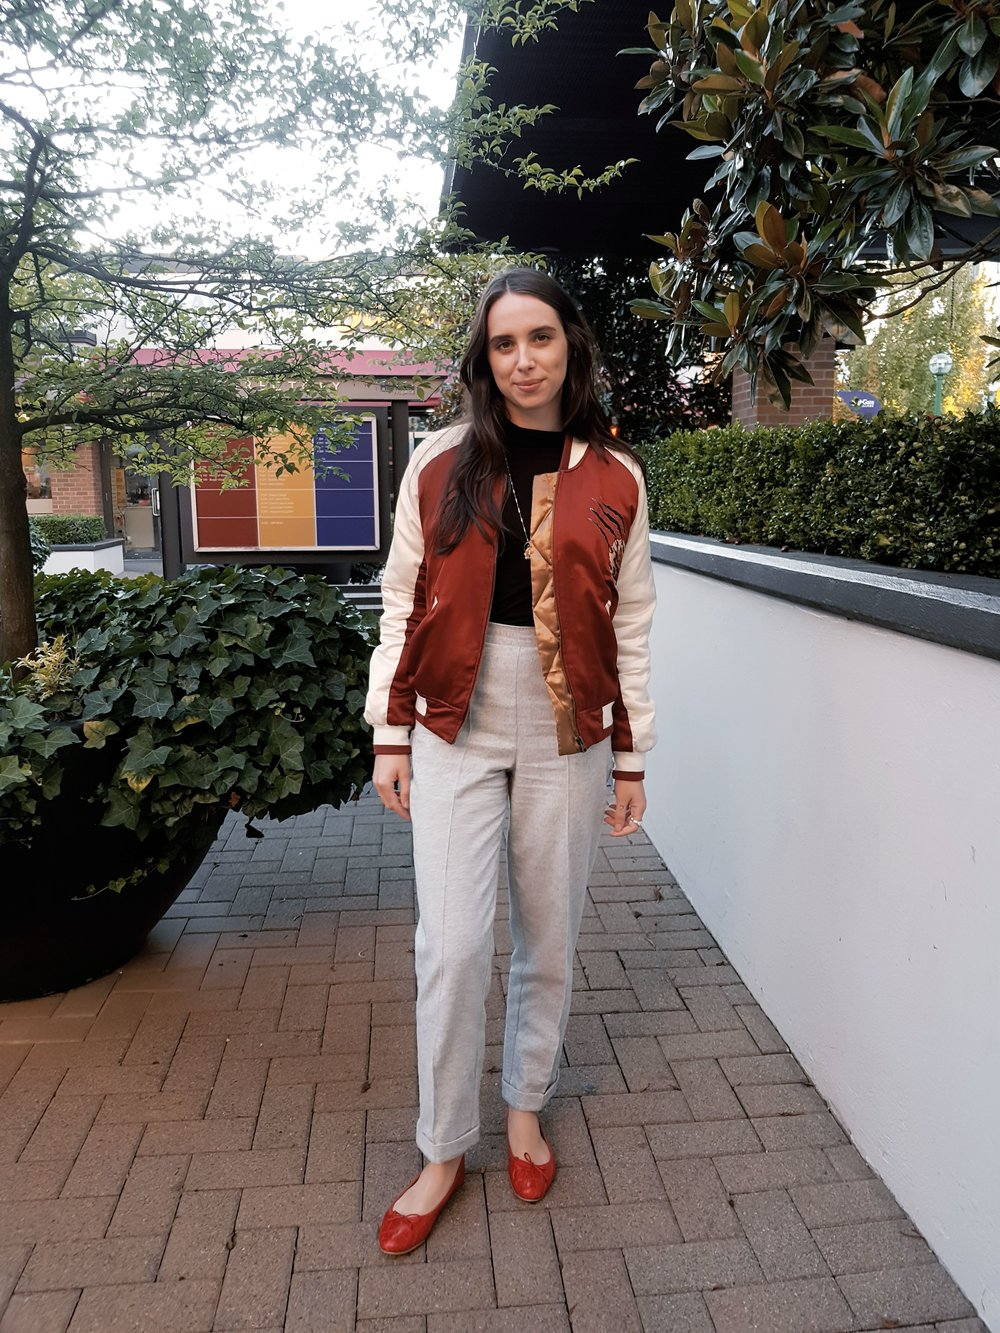 MONDAY - Urban Outfitters jacket, Dynamite turtleneck, pants bought in Russia, Zara flats